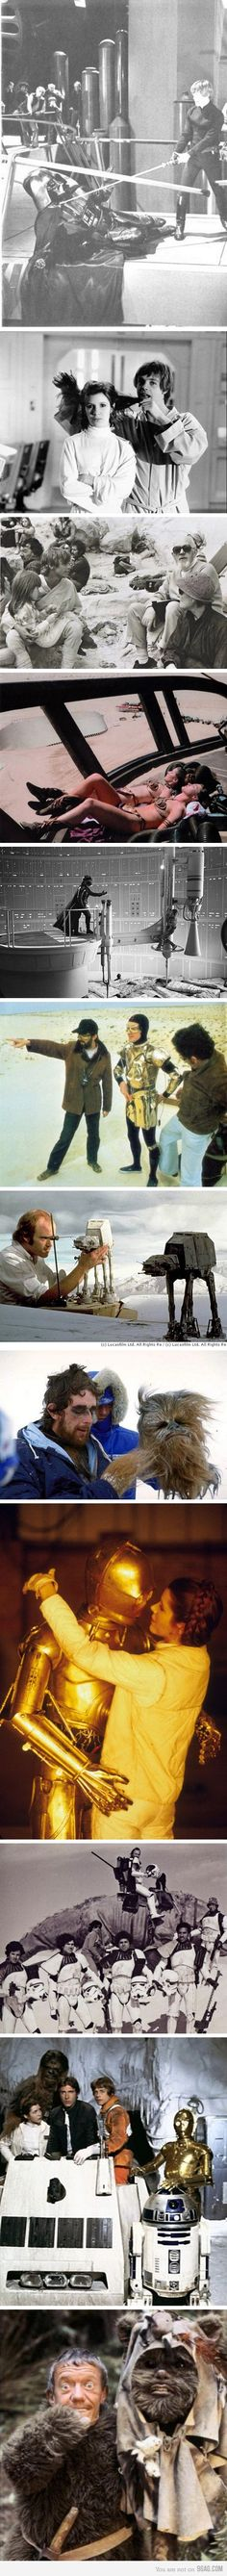 Star Wars, behind the scenes. Love these!